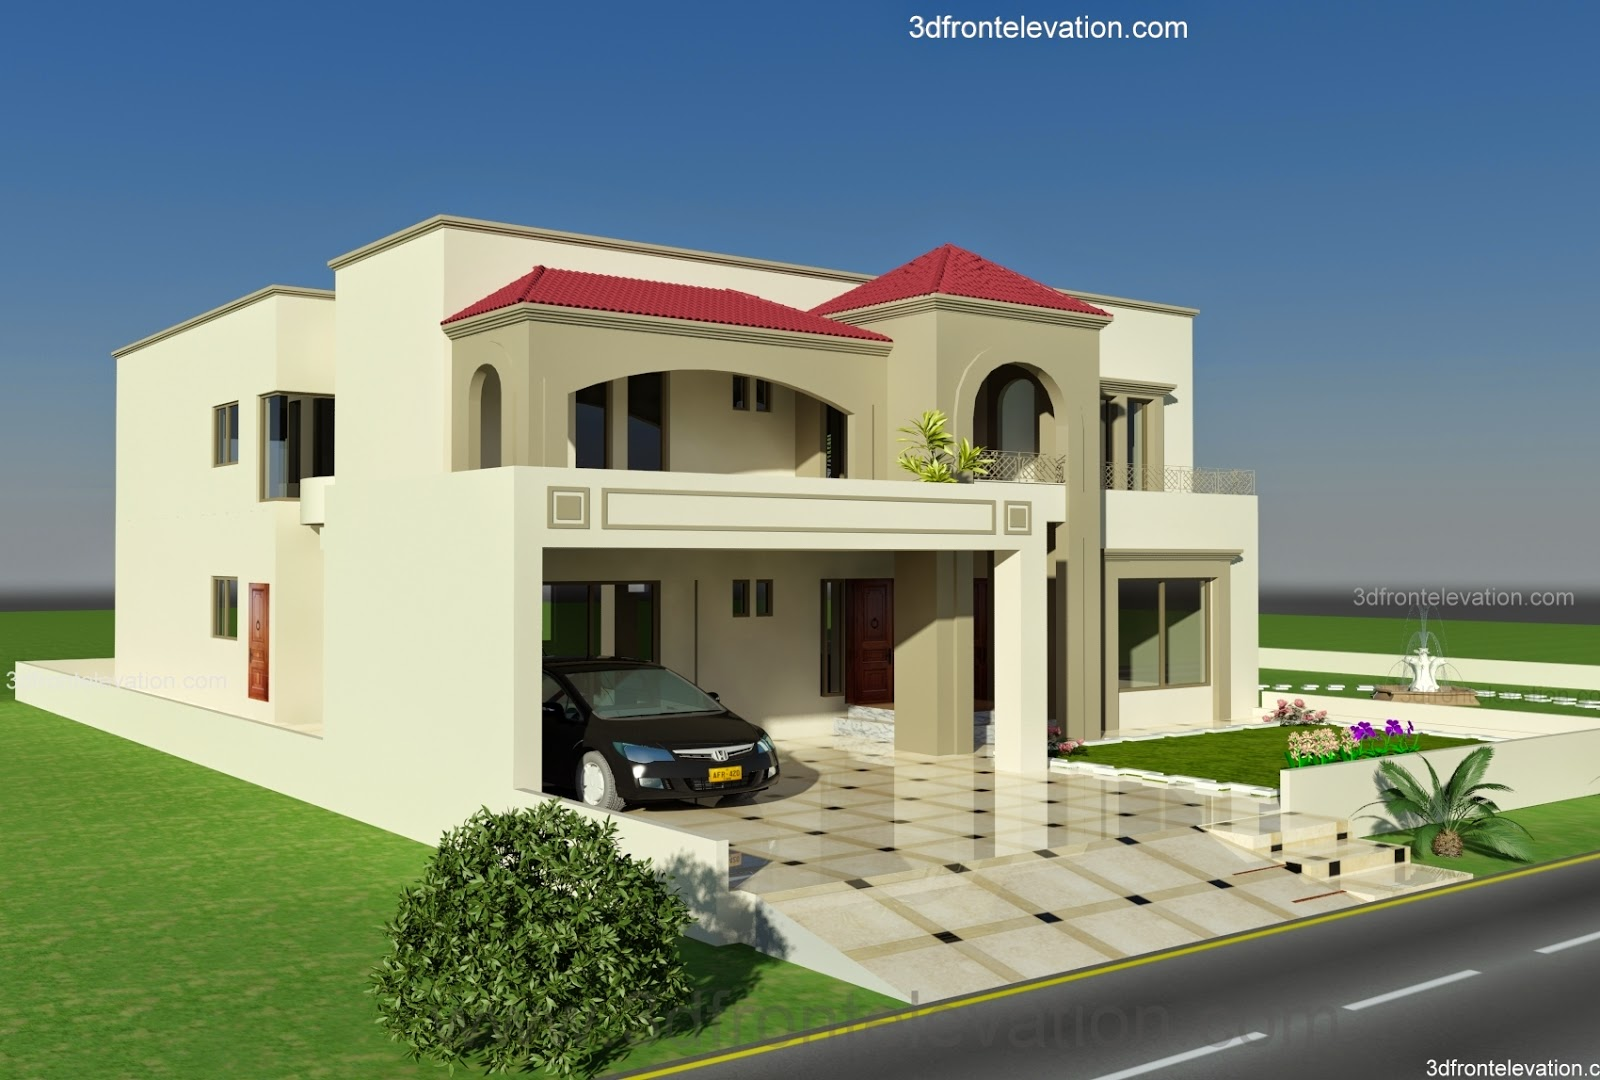 Front Elevation Of House In Punjab : Kothi design in pakistan joy studio gallery